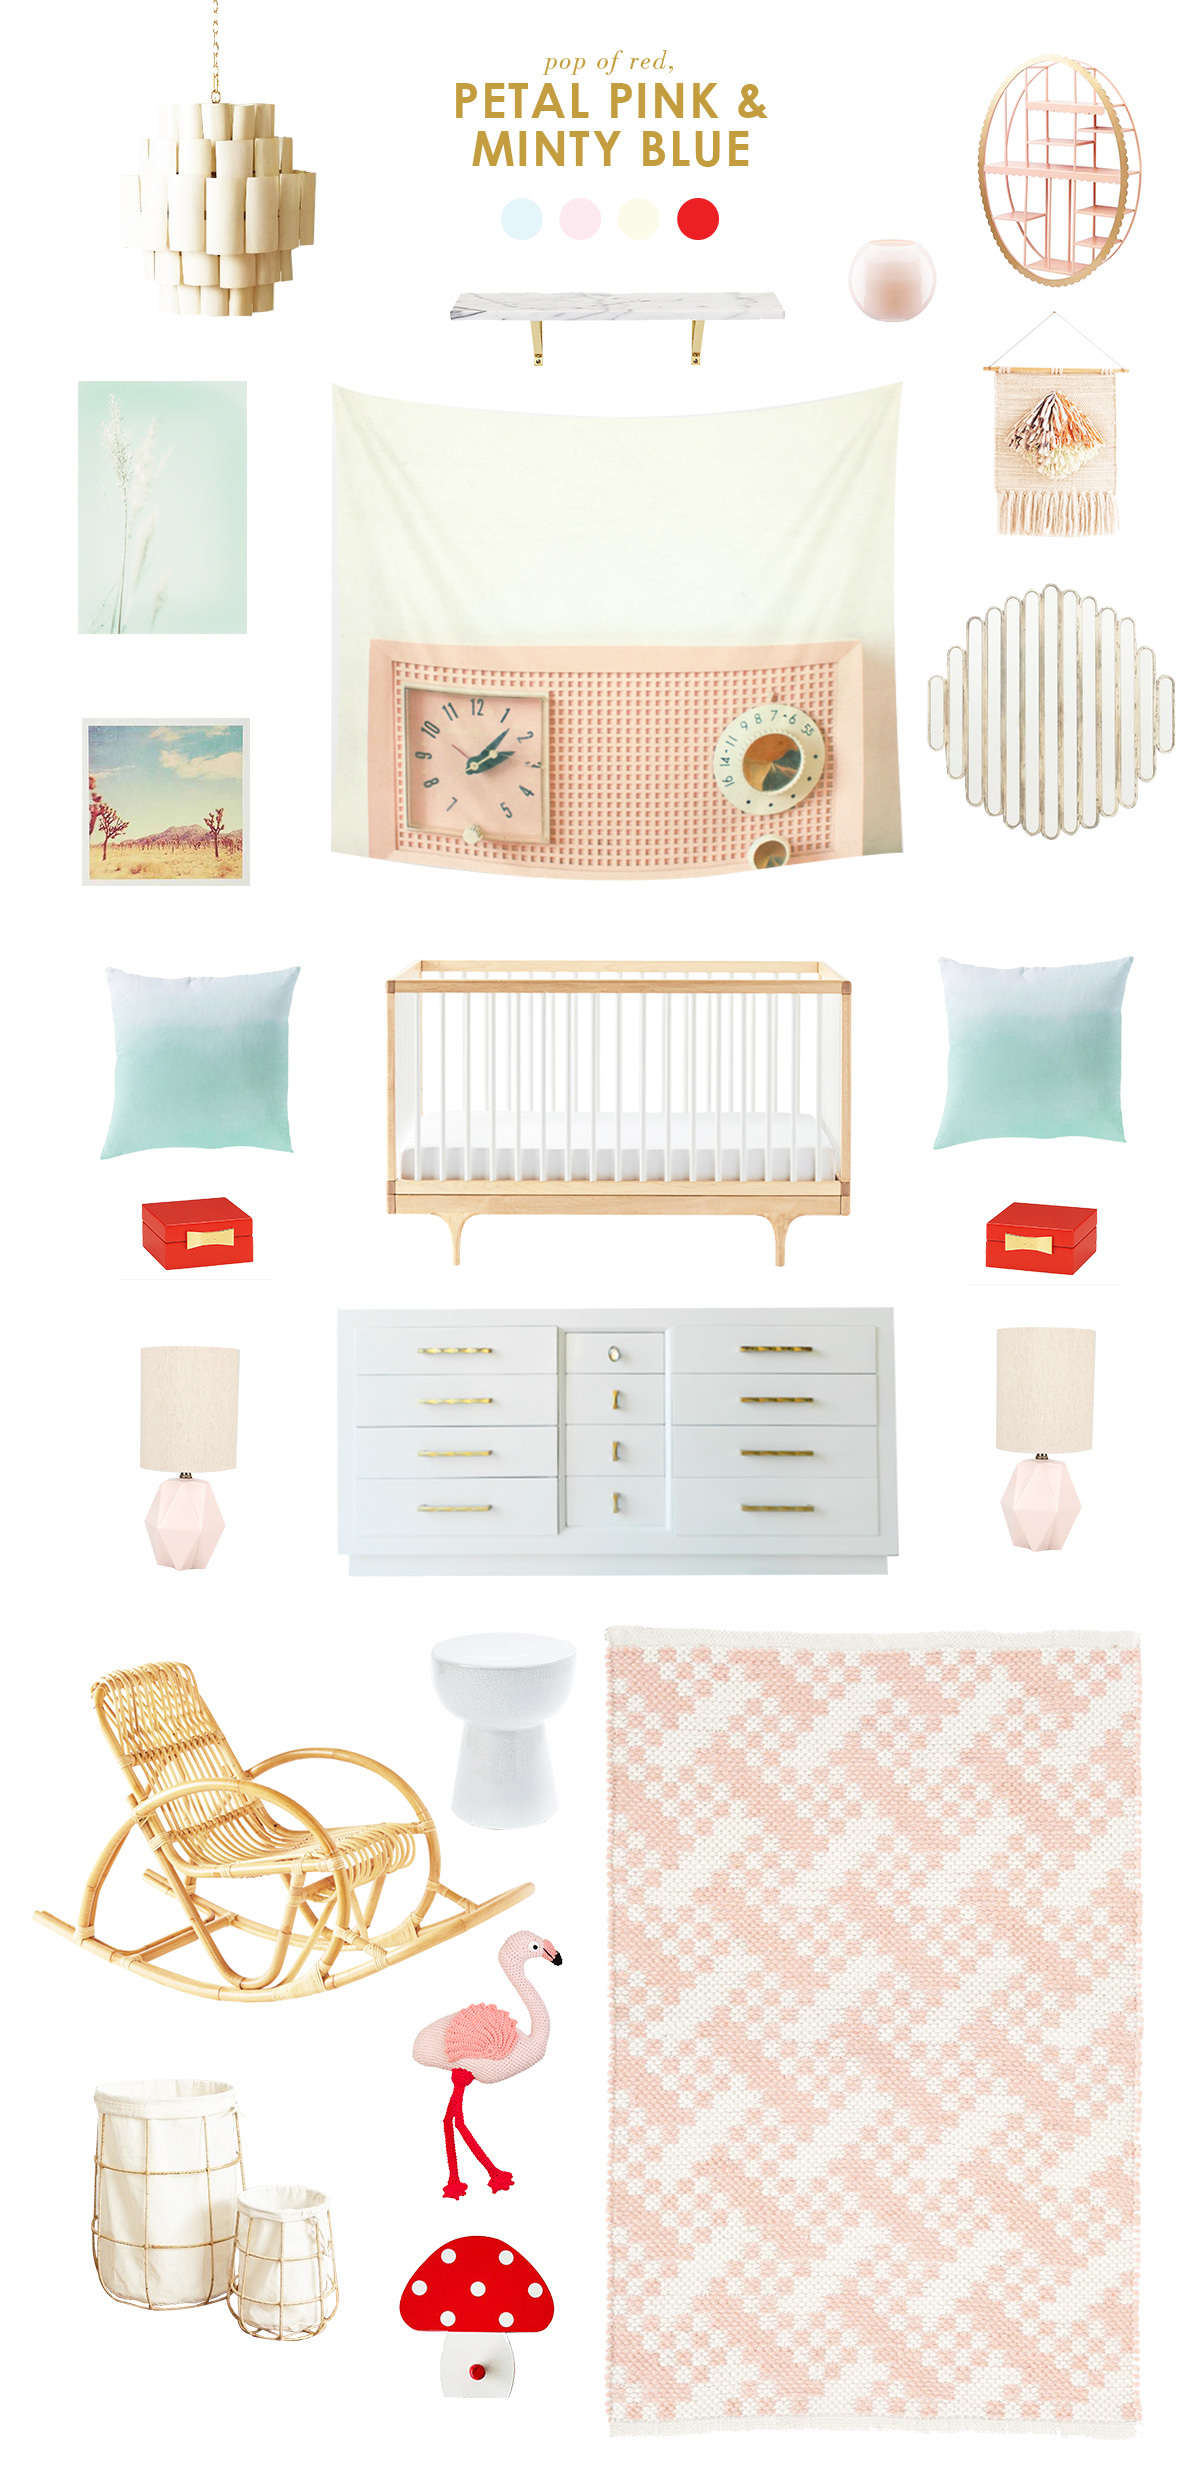 Petal Pink Amp Minty Blue Nursery Ideas Lay Baby Lay Lay